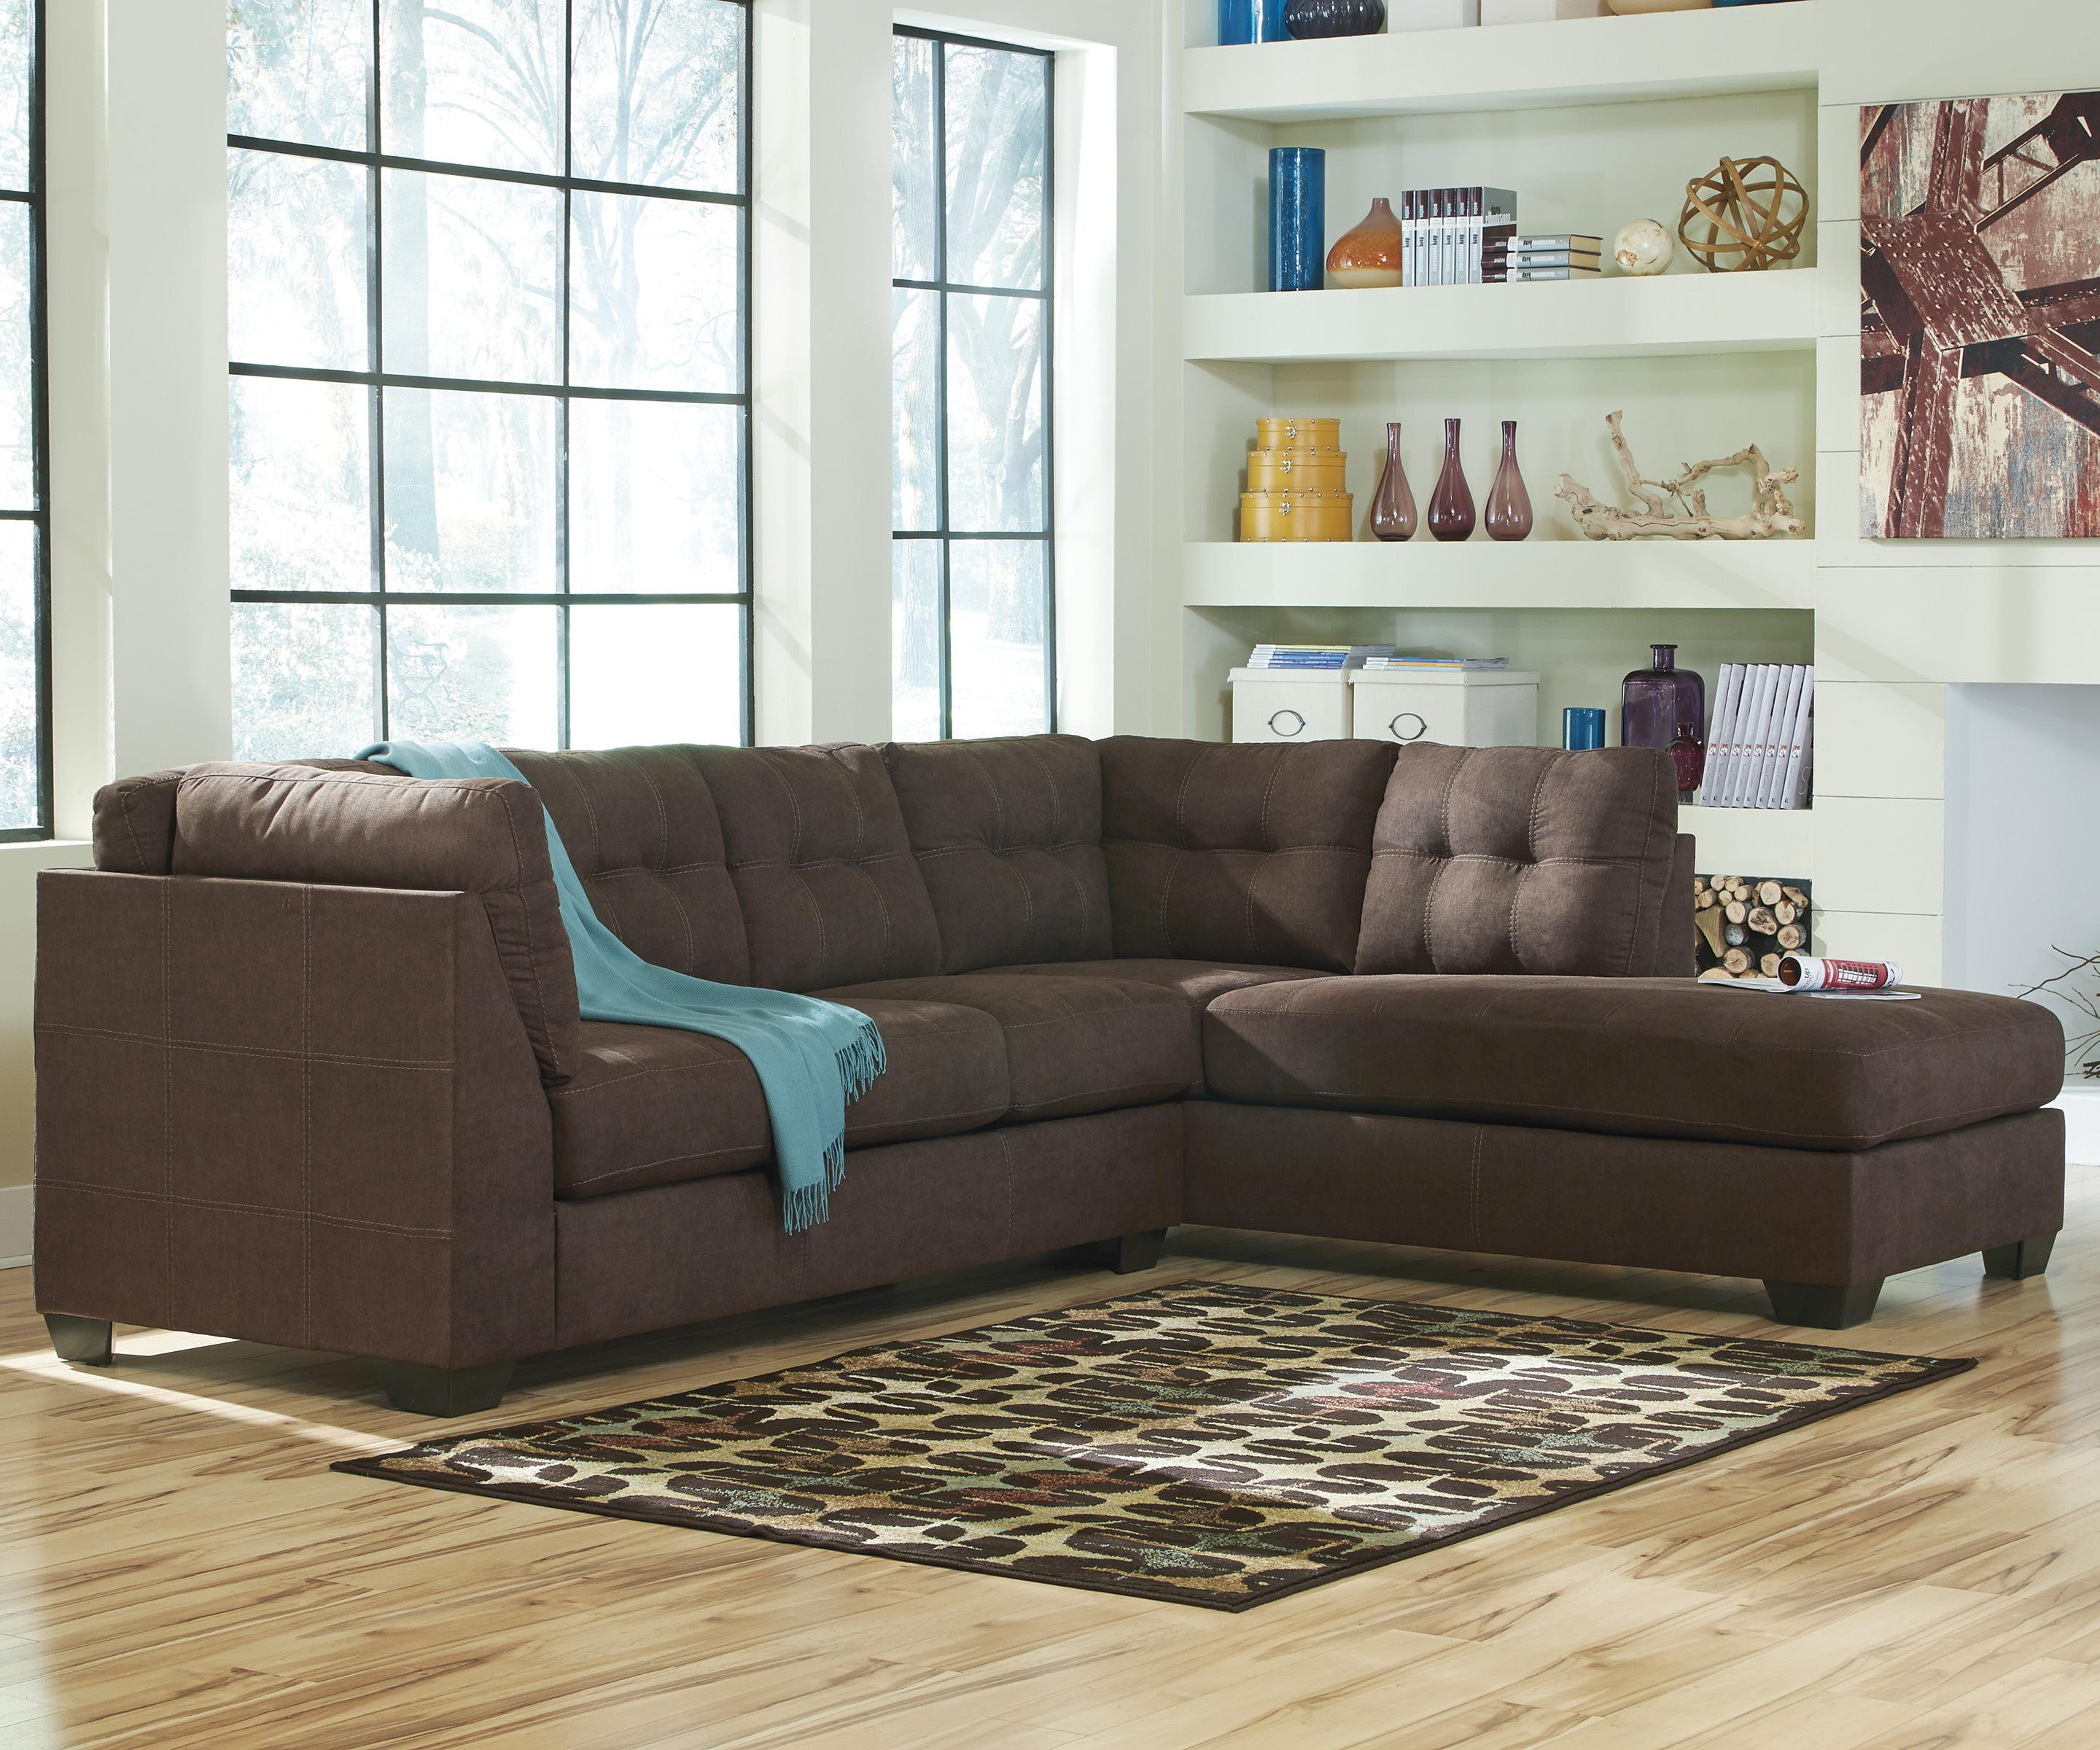 Maier - Walnut 2-Piece Sectional w/ Sleeper Sofa & Right Chaise by  Benchcraft by Ashley at Royal Furniture